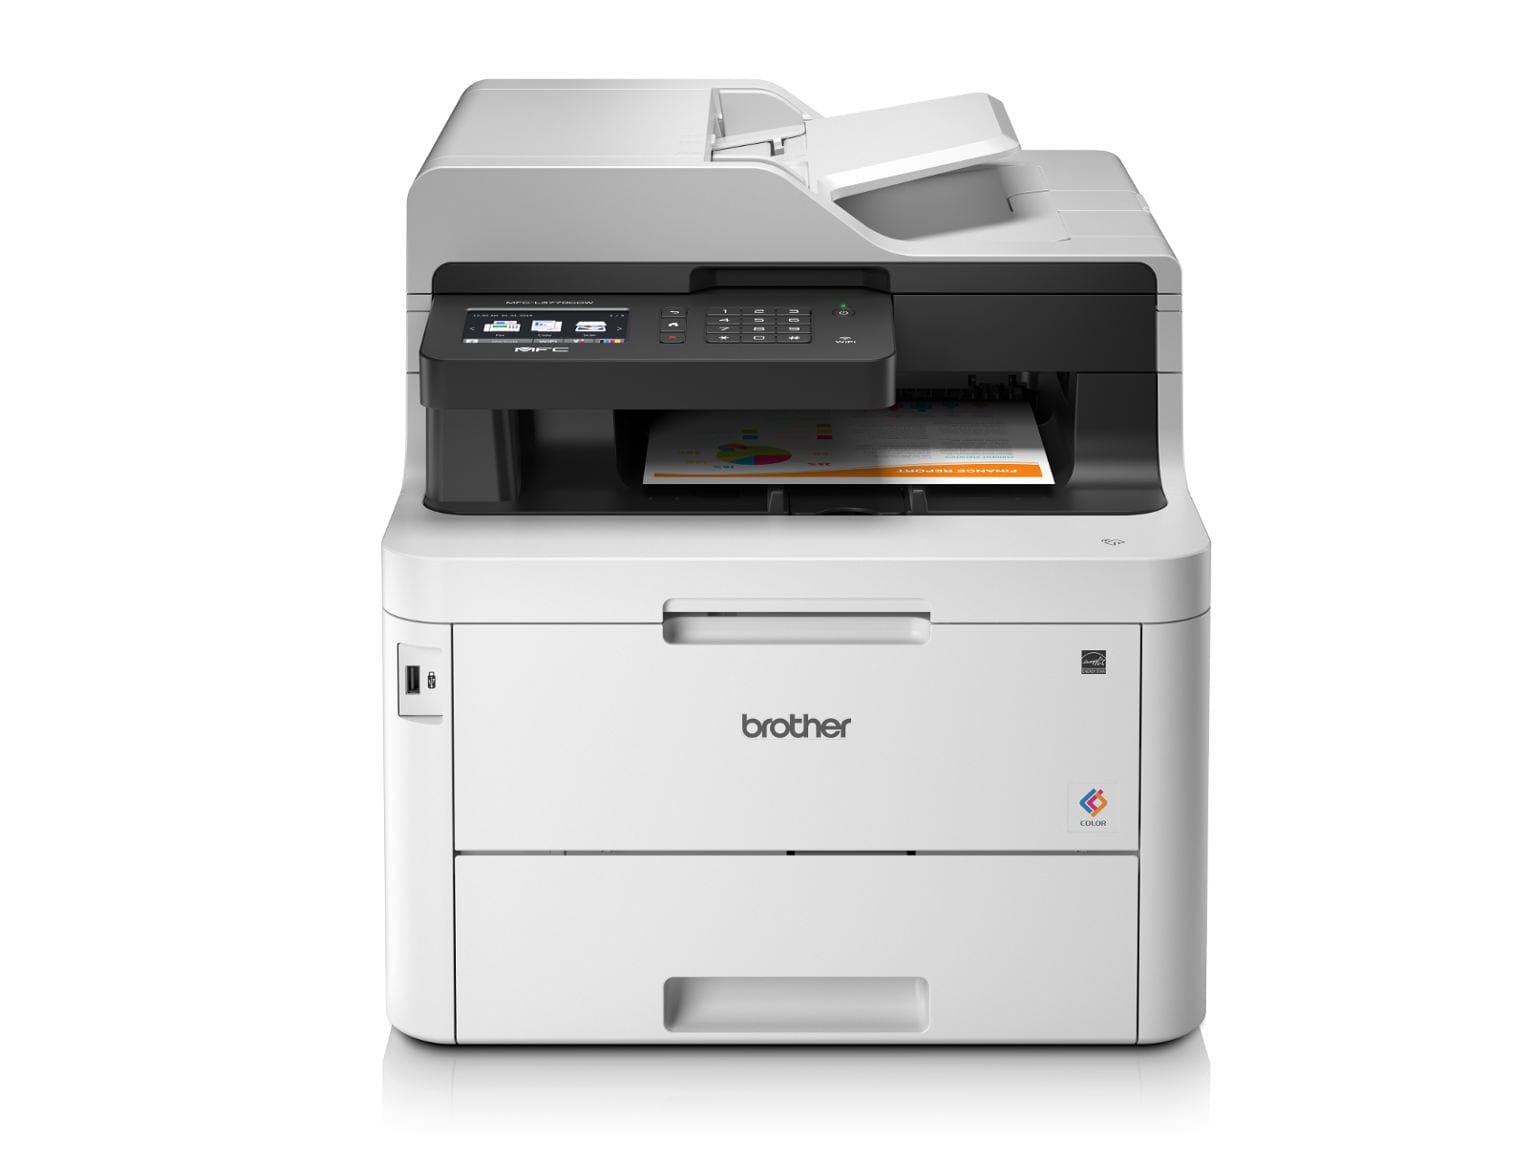 Impresora multifunción láser color MFC-L3770CDW, Brother